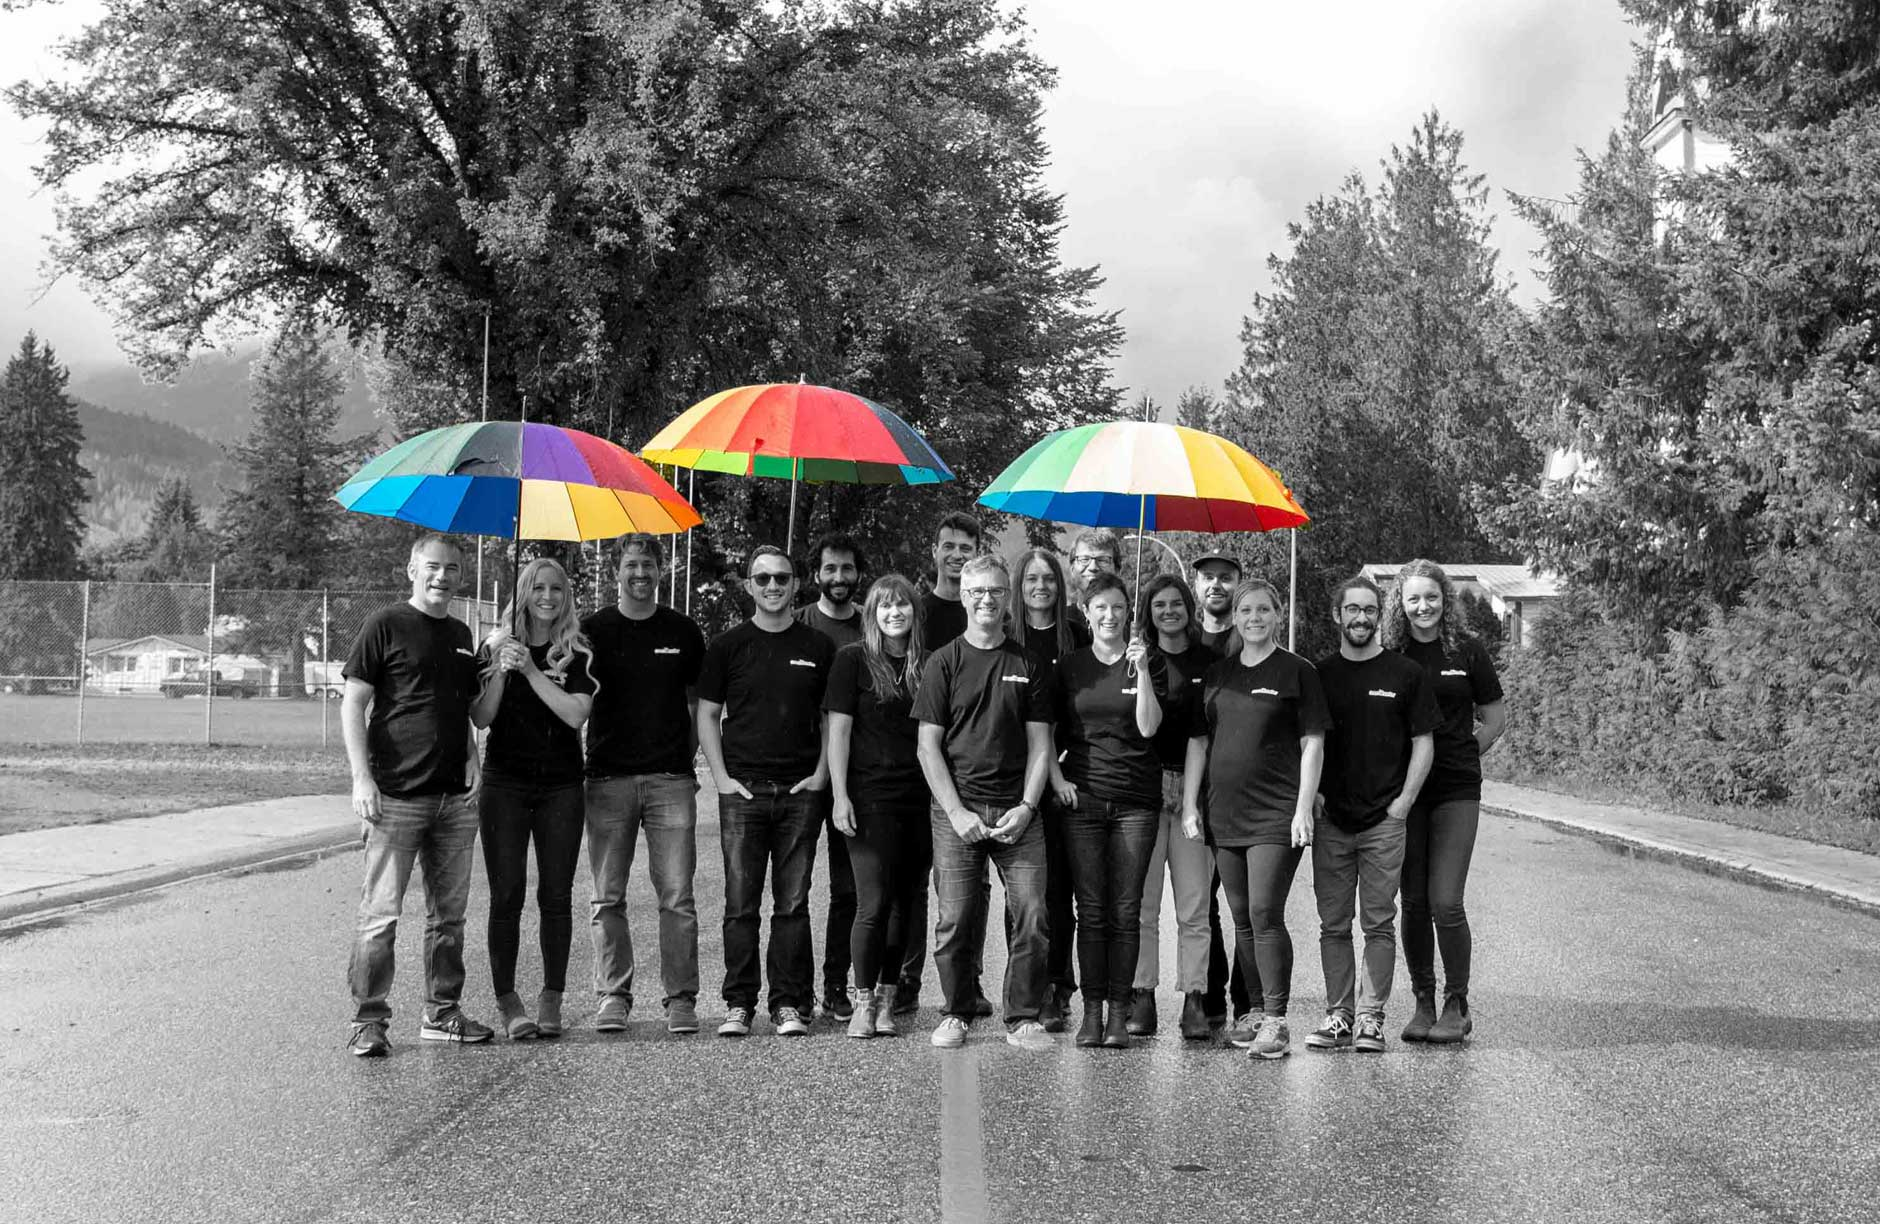 The staff at Cronometer in Revelstoke, BC